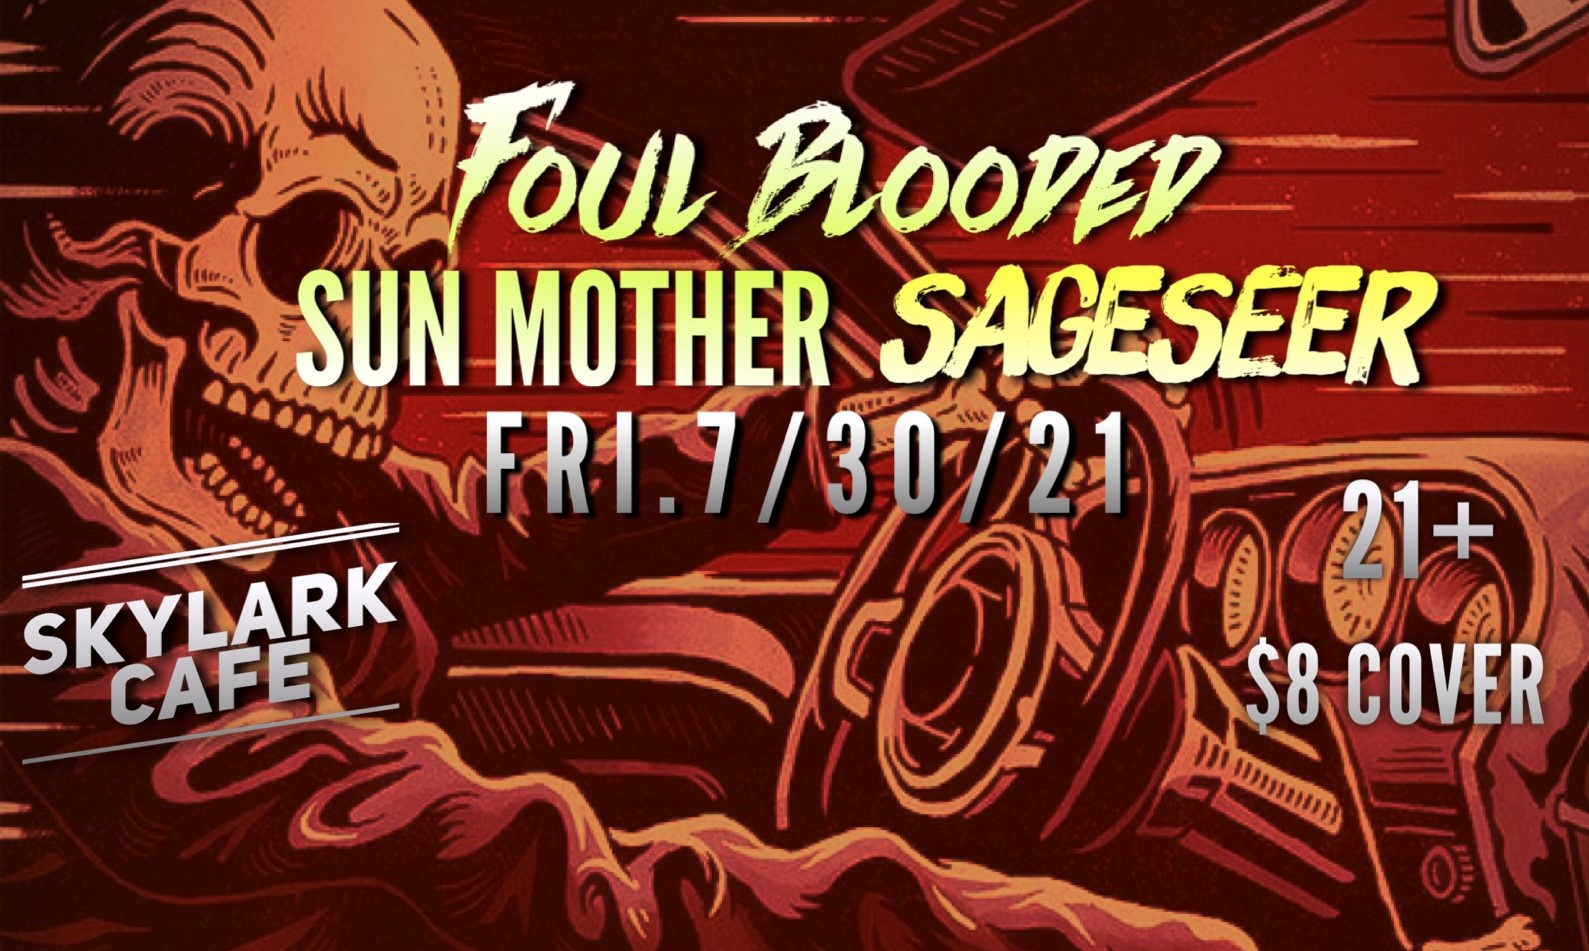 Drawing on Seattle's rock heritage, Foul Blooded brings a 3-piece high octane performance playing original infectious edgy grooves laced with rock, metal, blues and funk. Sageseer (formerly MedicineHead) is a Seattle-based psychedelic acid rock deep blues experience. Sun Mother is grunge-hop music from Seattle made by Colbi Childs & friends.